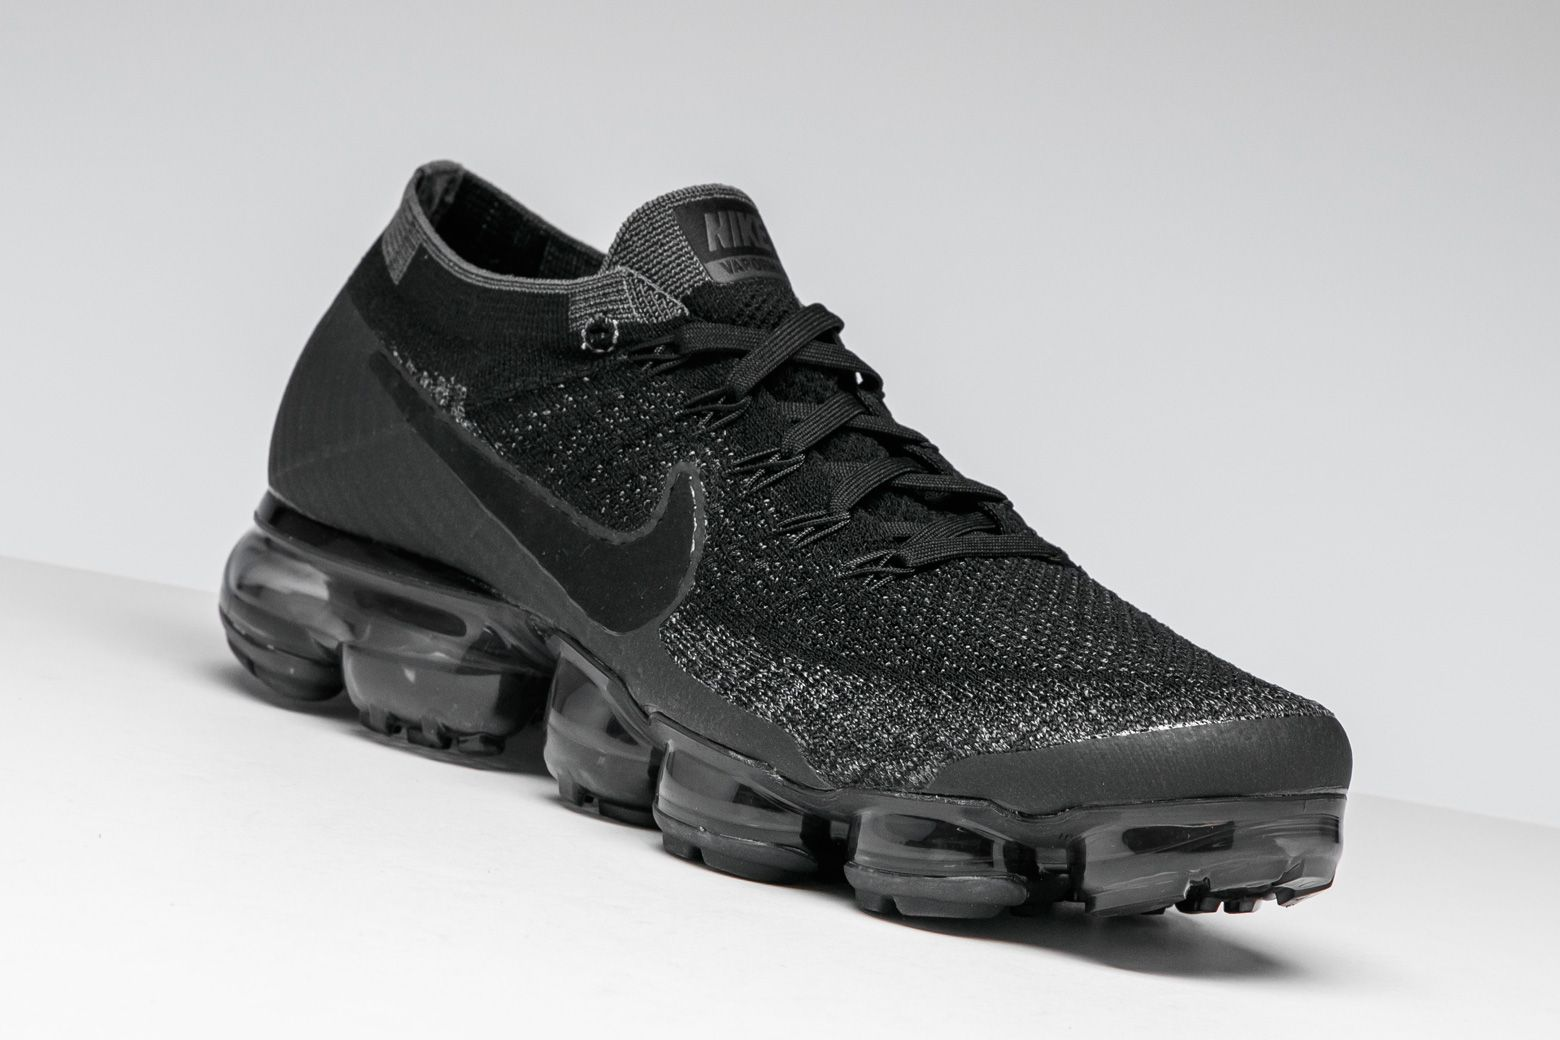 b4b1f9517e5 Nike outfits the groundbreaking Air VaporMax model in a mean